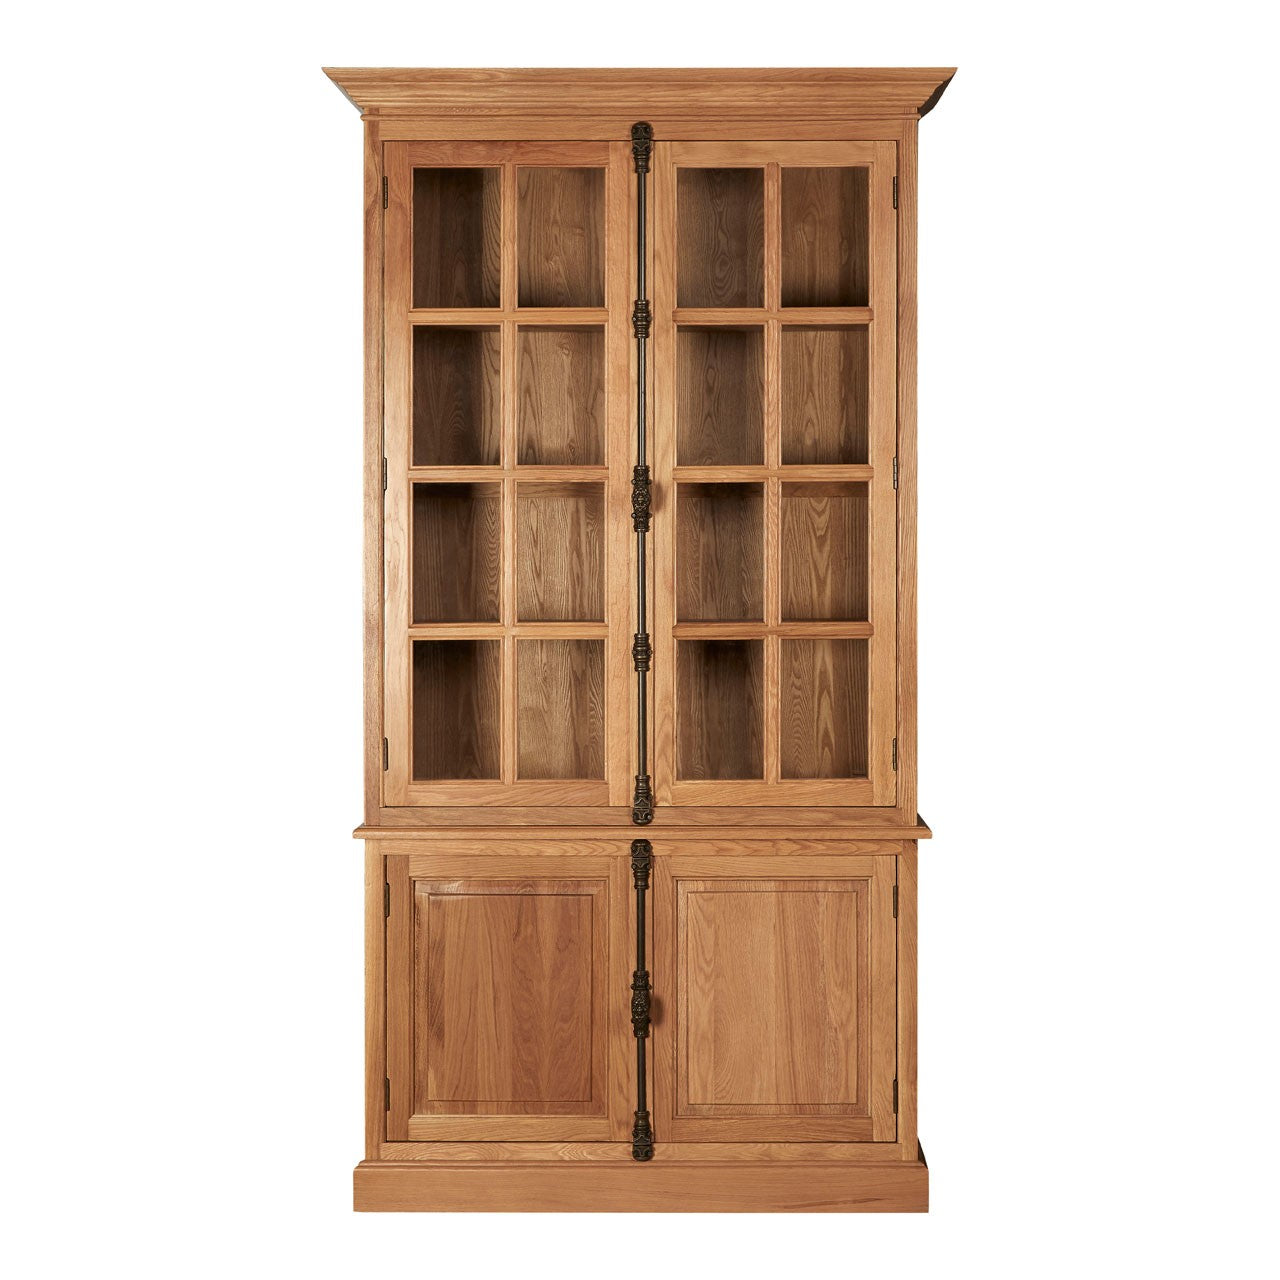 Lyon Cabinet With 3 Upper Shelves